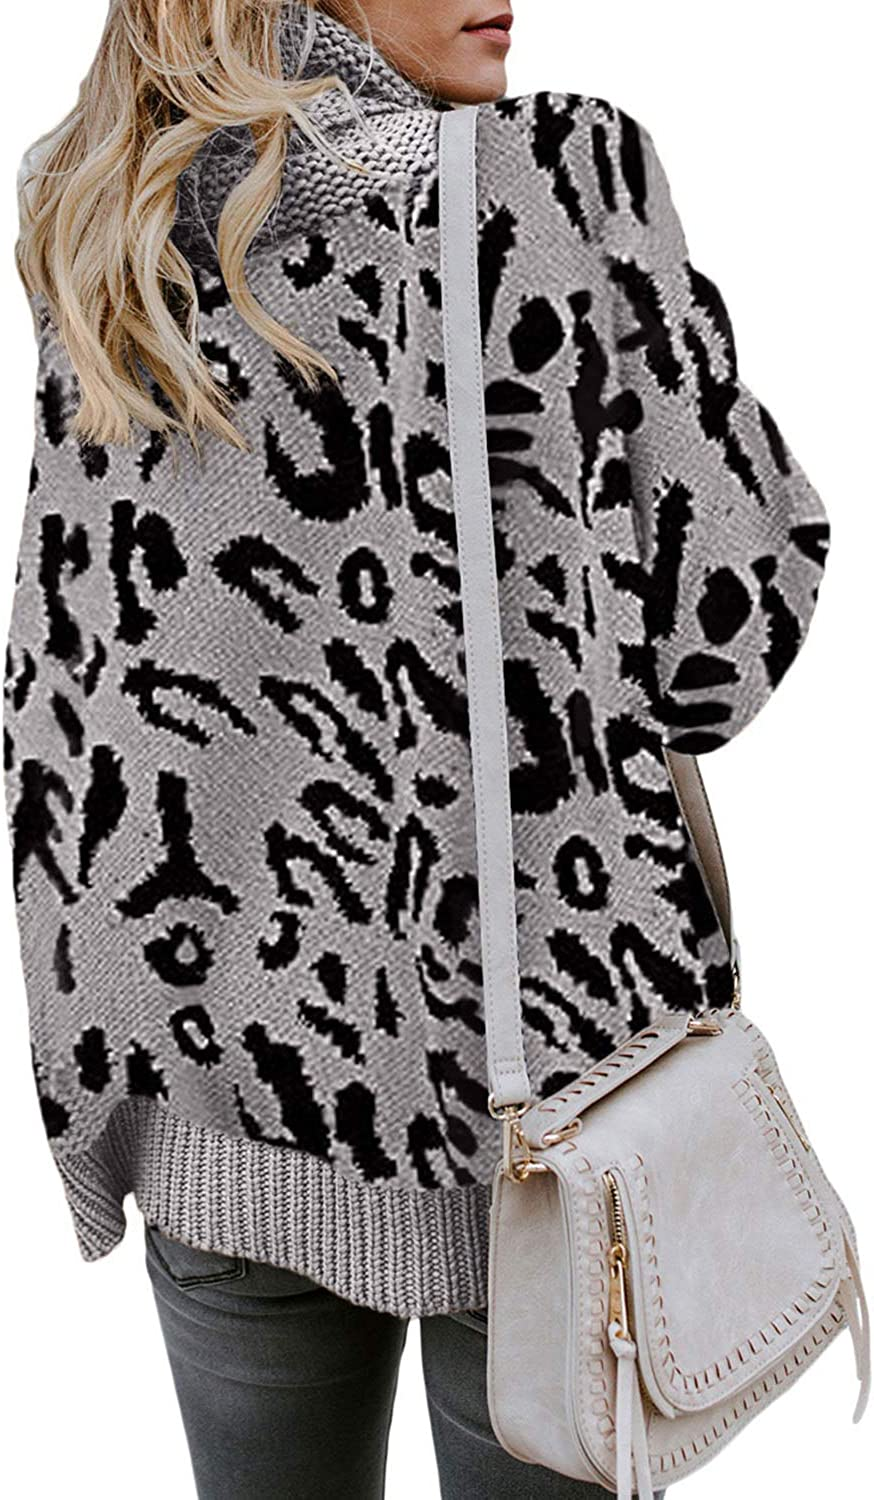 LOSRLY Womens Turtleneck Long Sleeve Leopard Printed Chunky Knit Pullover Sweater Tops